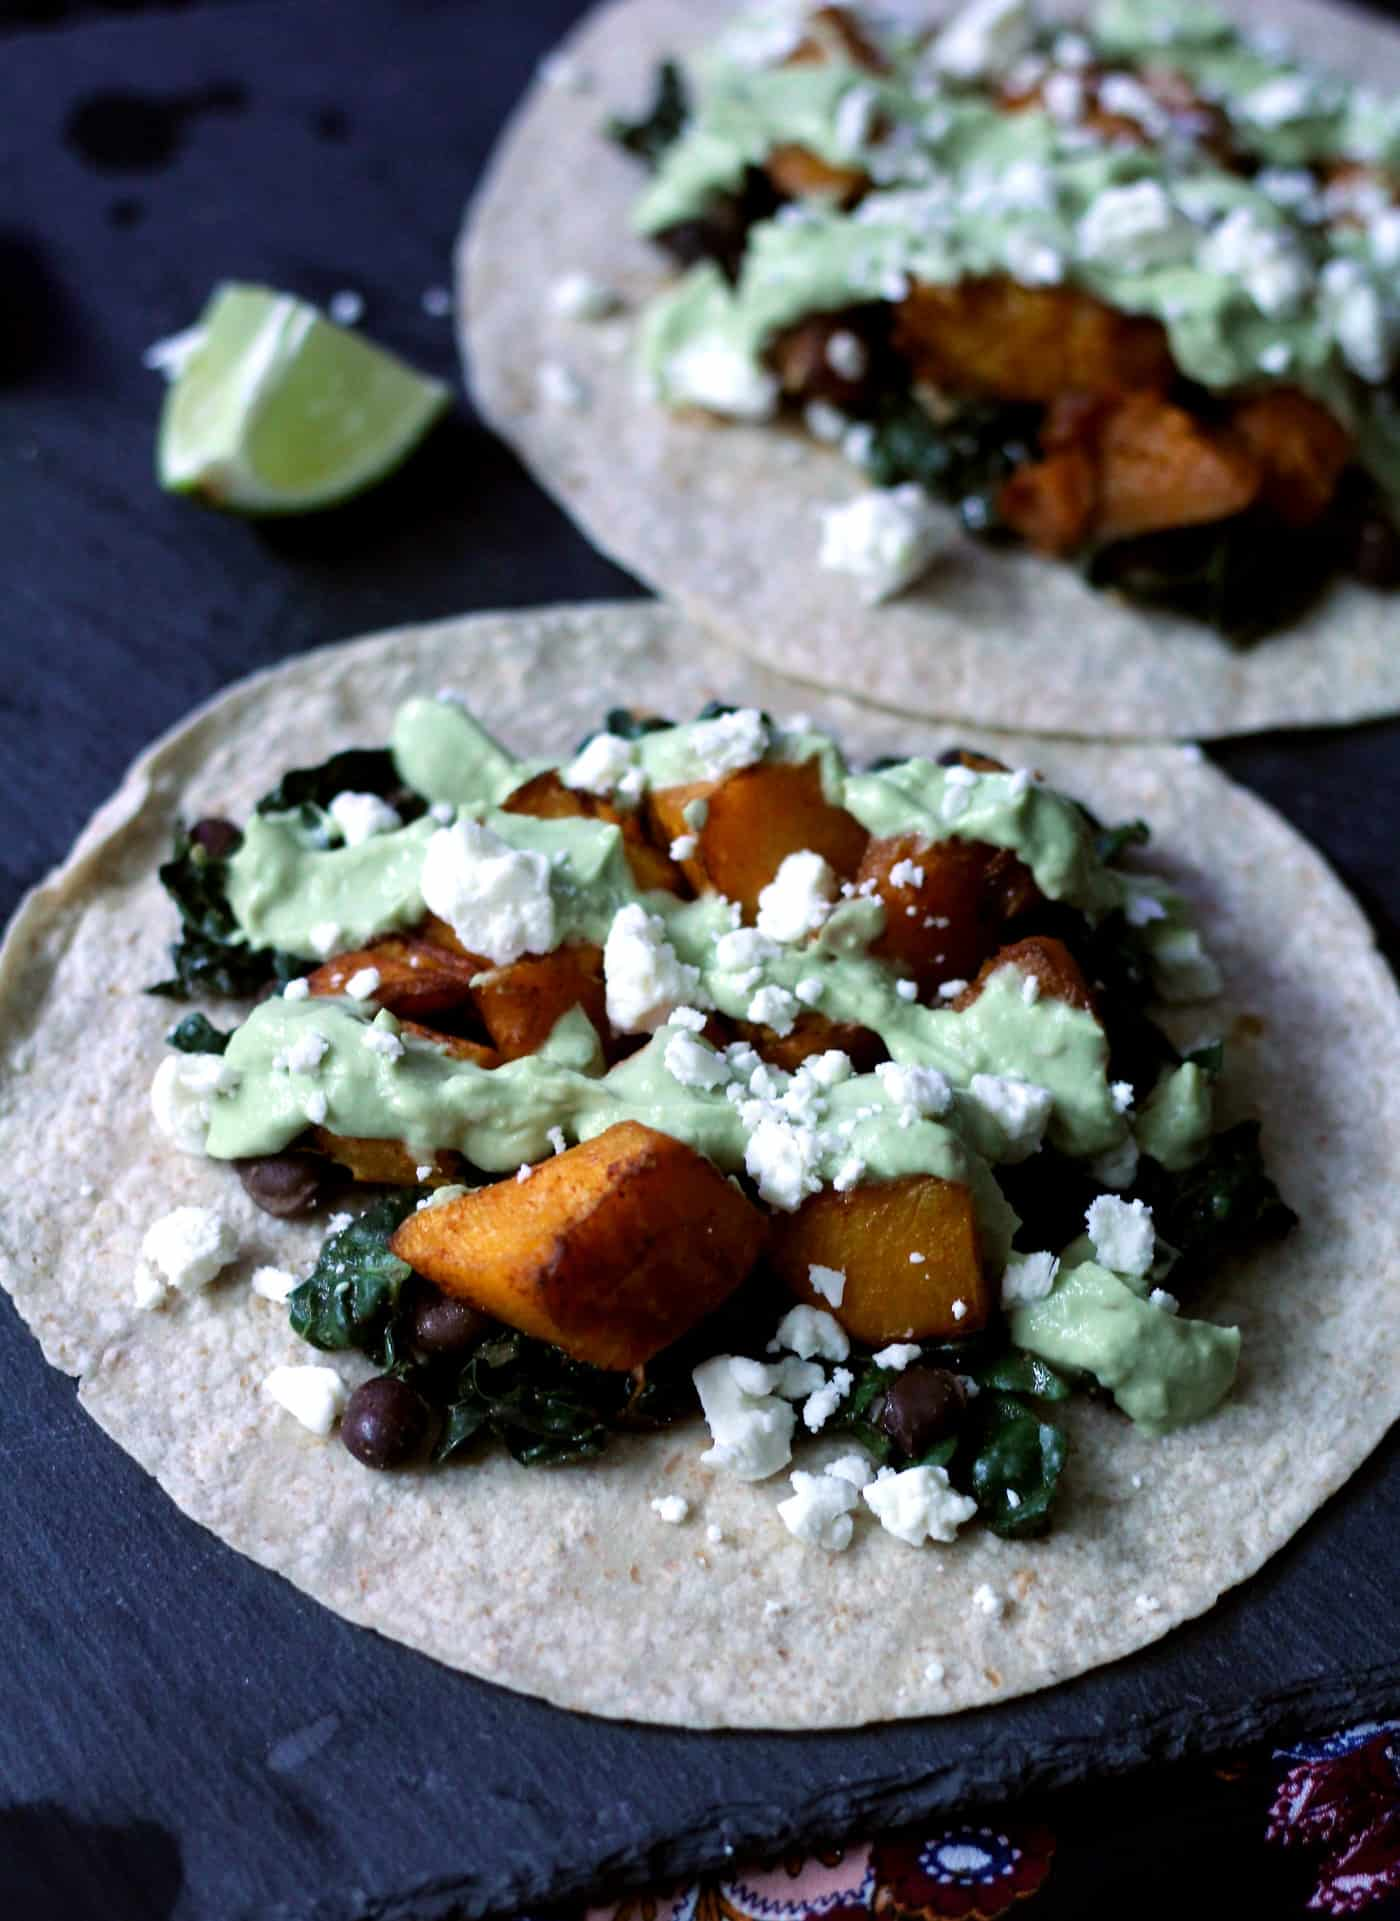 Healthy Roasted Butternut Squash Tacos with Avocado Crema